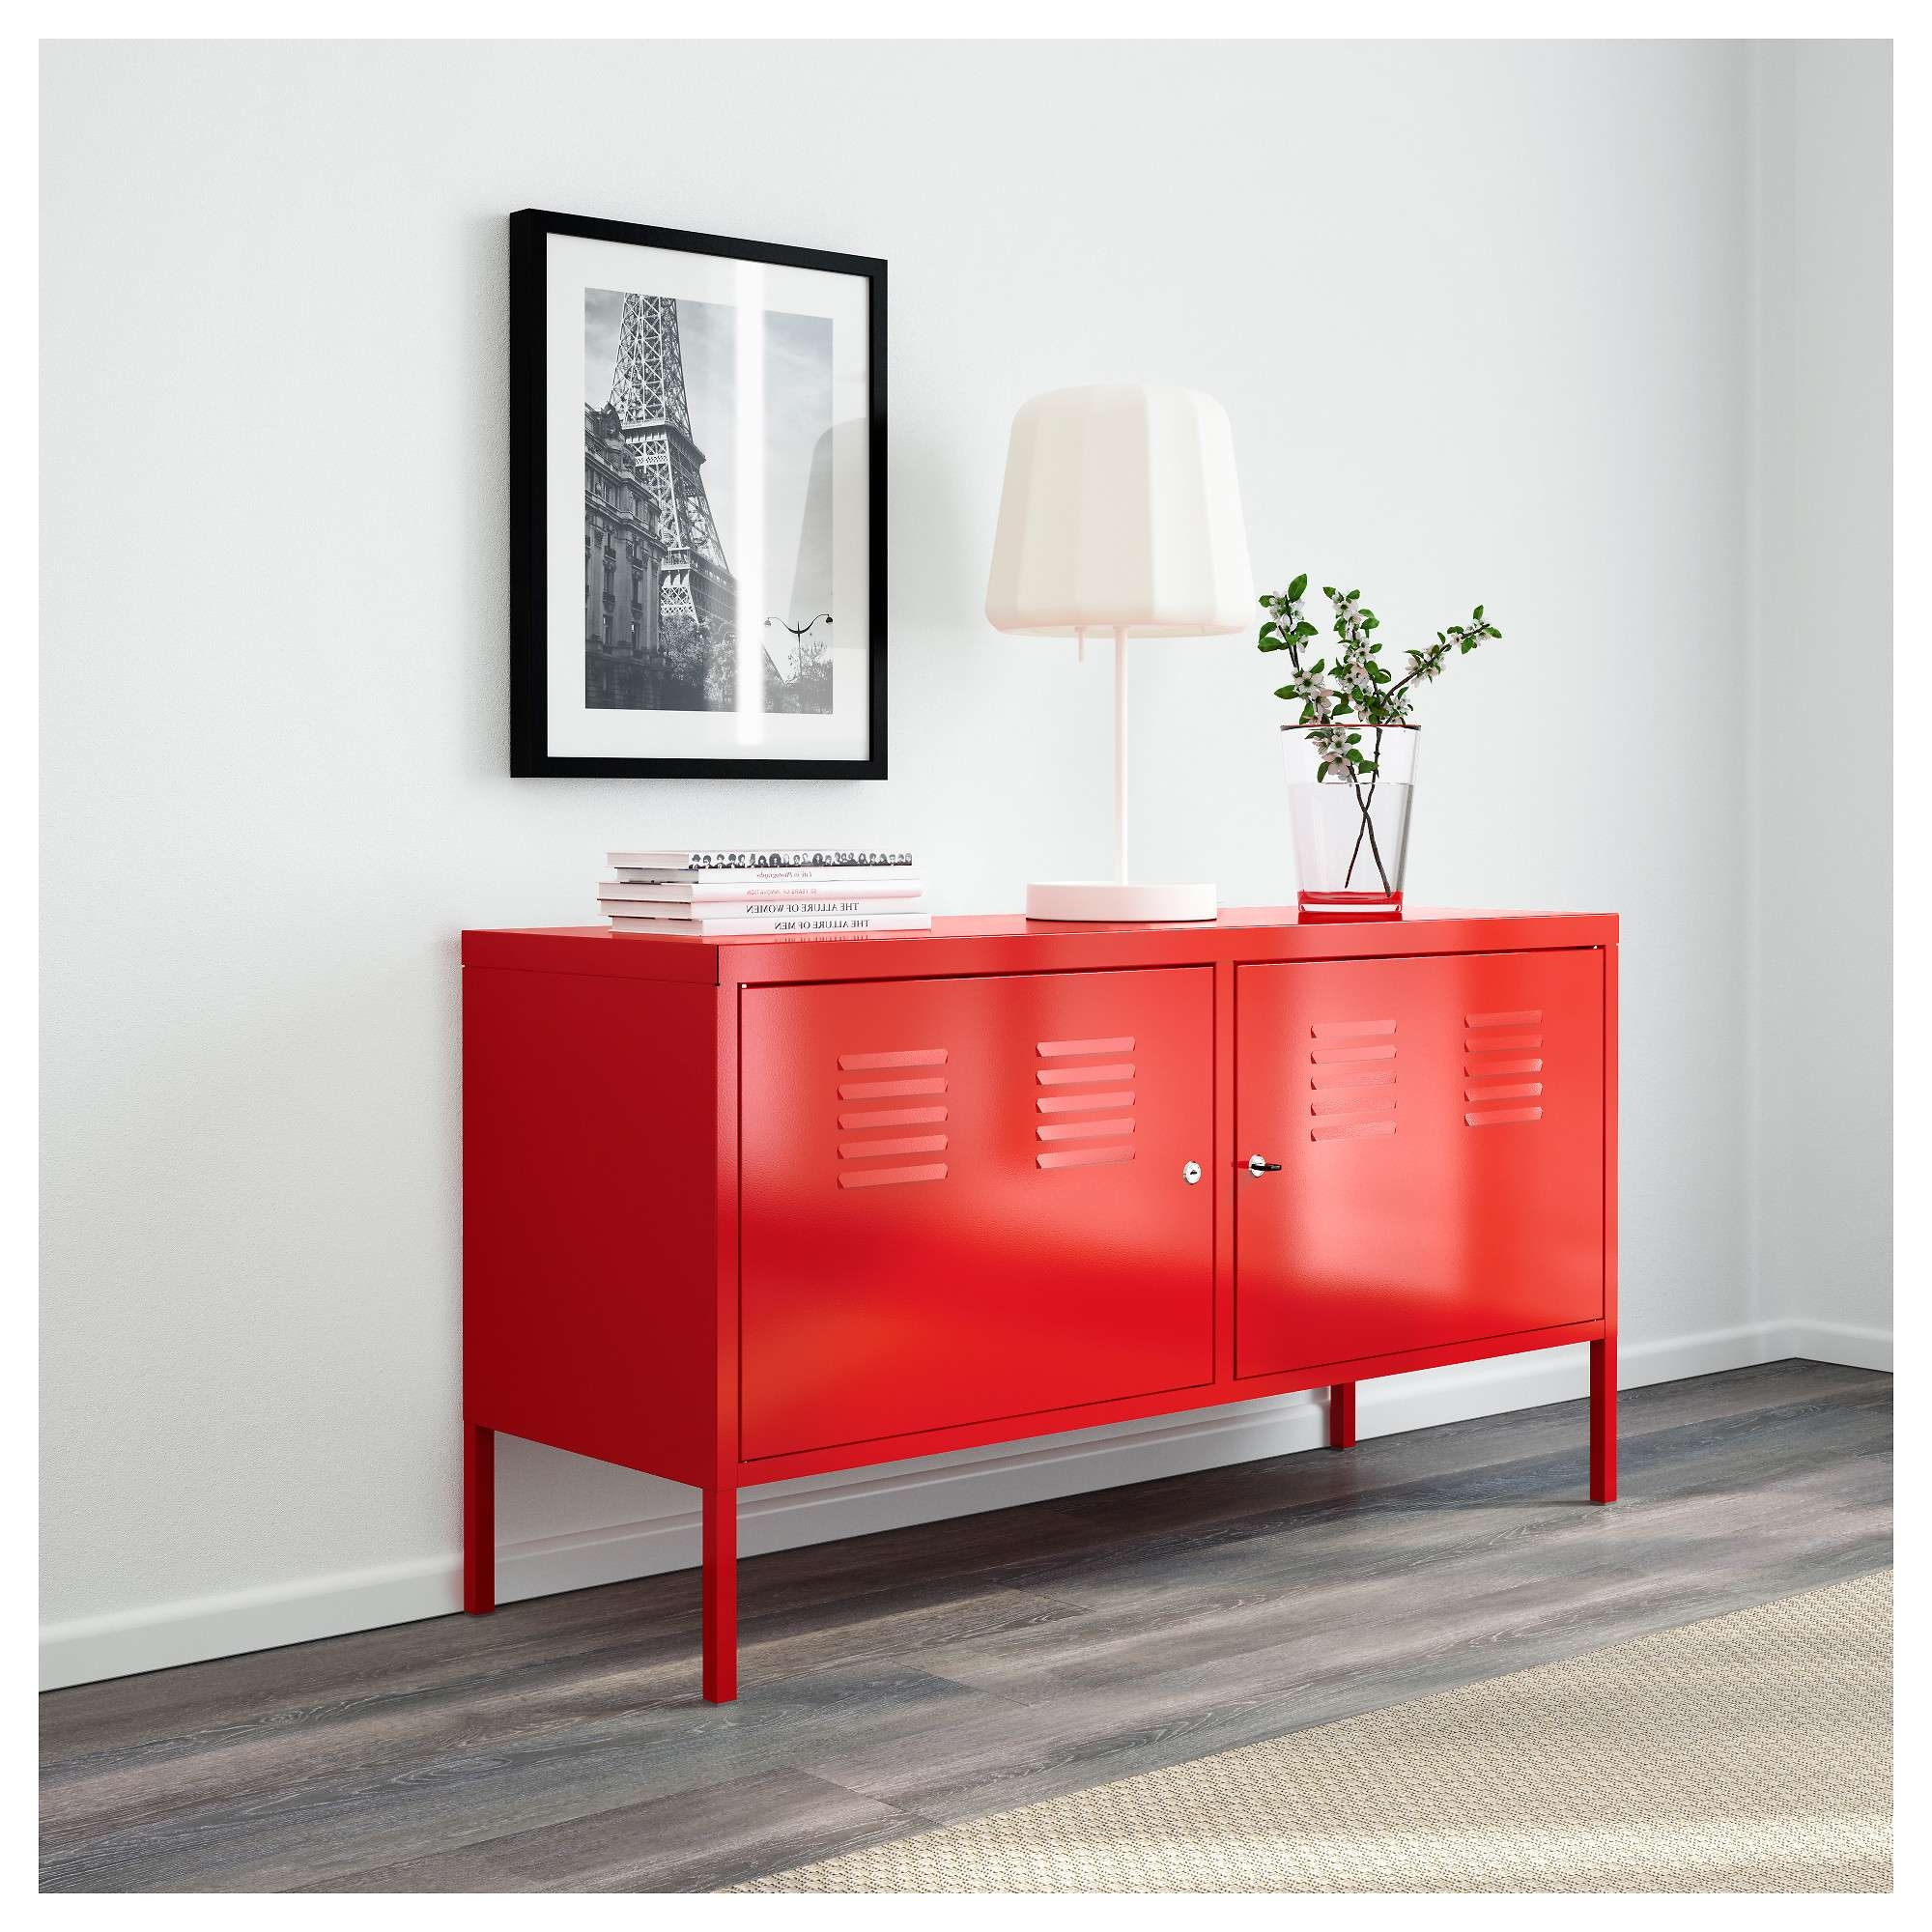 Ikea Ps Cabinet – Red – Ikea Pertaining To Ikea Red Sideboards (View 2 of 20)